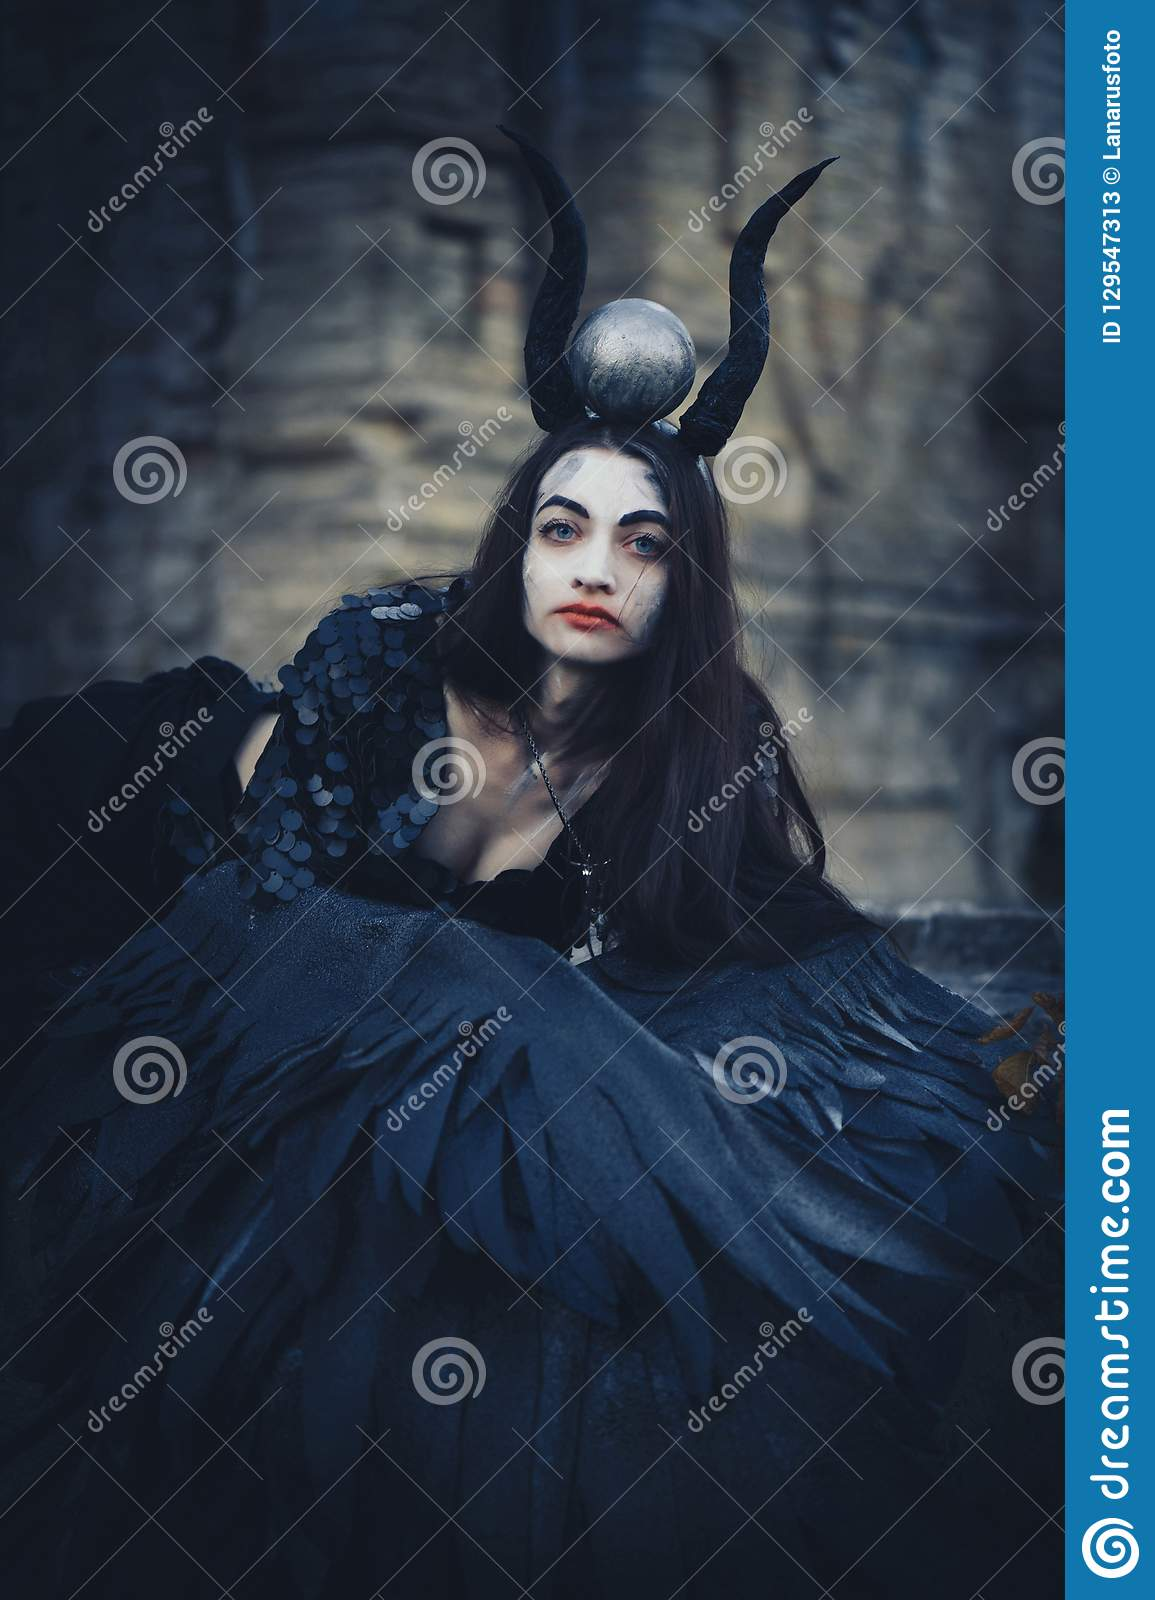 e22a51a3f Pretty Demon Girl With Black Wings Behind Her Back